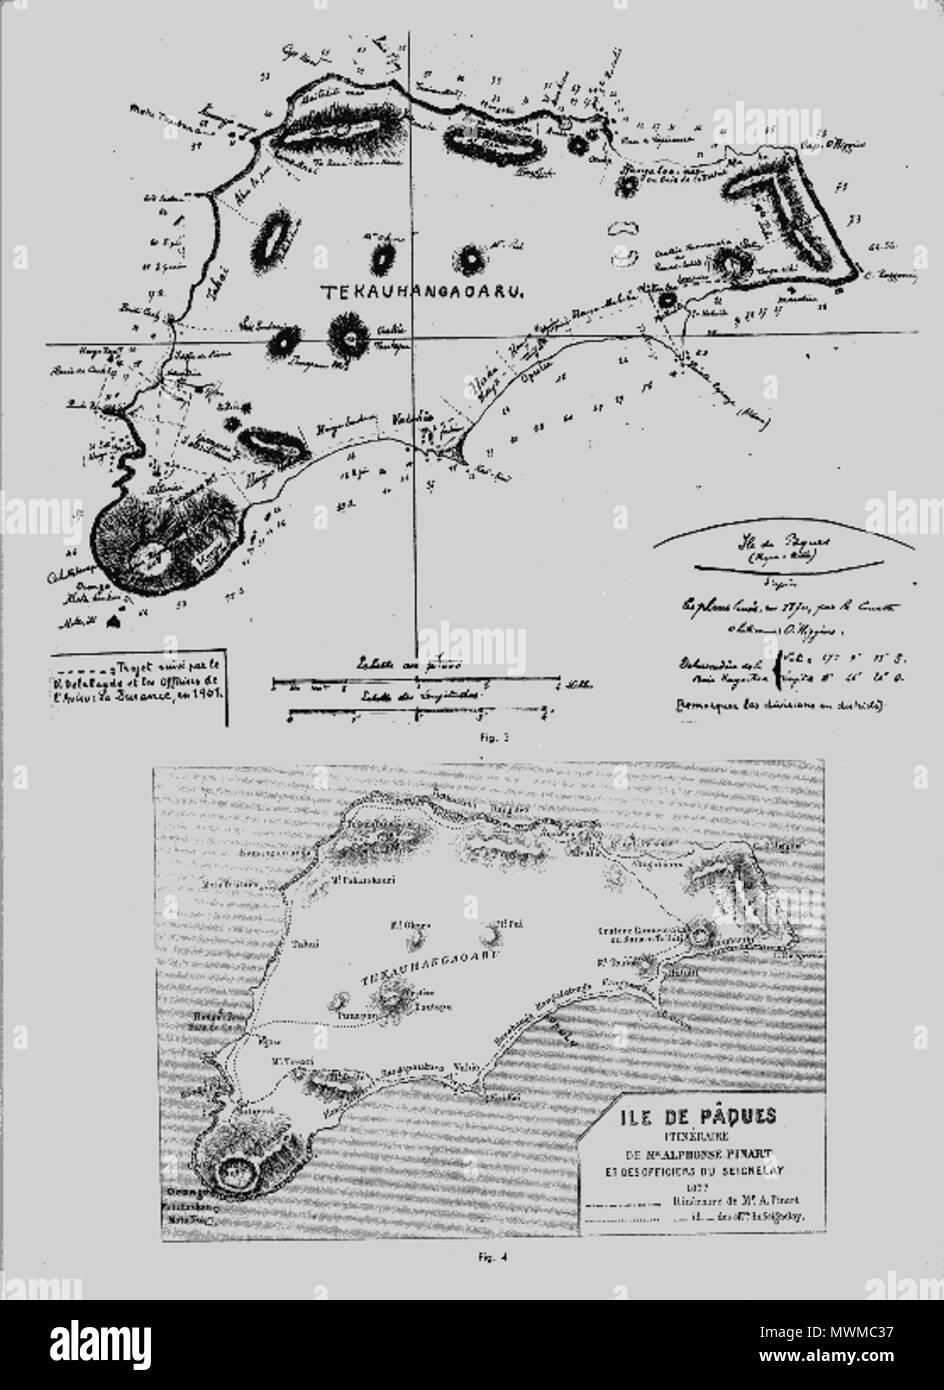 English: This map was based by Pinart on the map drawn by ... on map of bali, map of kwajalein, map of malaysia, map of french polynesia, map of bora bora, map of hawaii, map of new zealand, map of switzerland, map of thailand, map of moorea, map of brazil, map of seychelles, map of costa rica, map of south pacific, map of bahamas, map of austrailia, map of carribean, map of fiji, map of pacific ocean, map of spain,